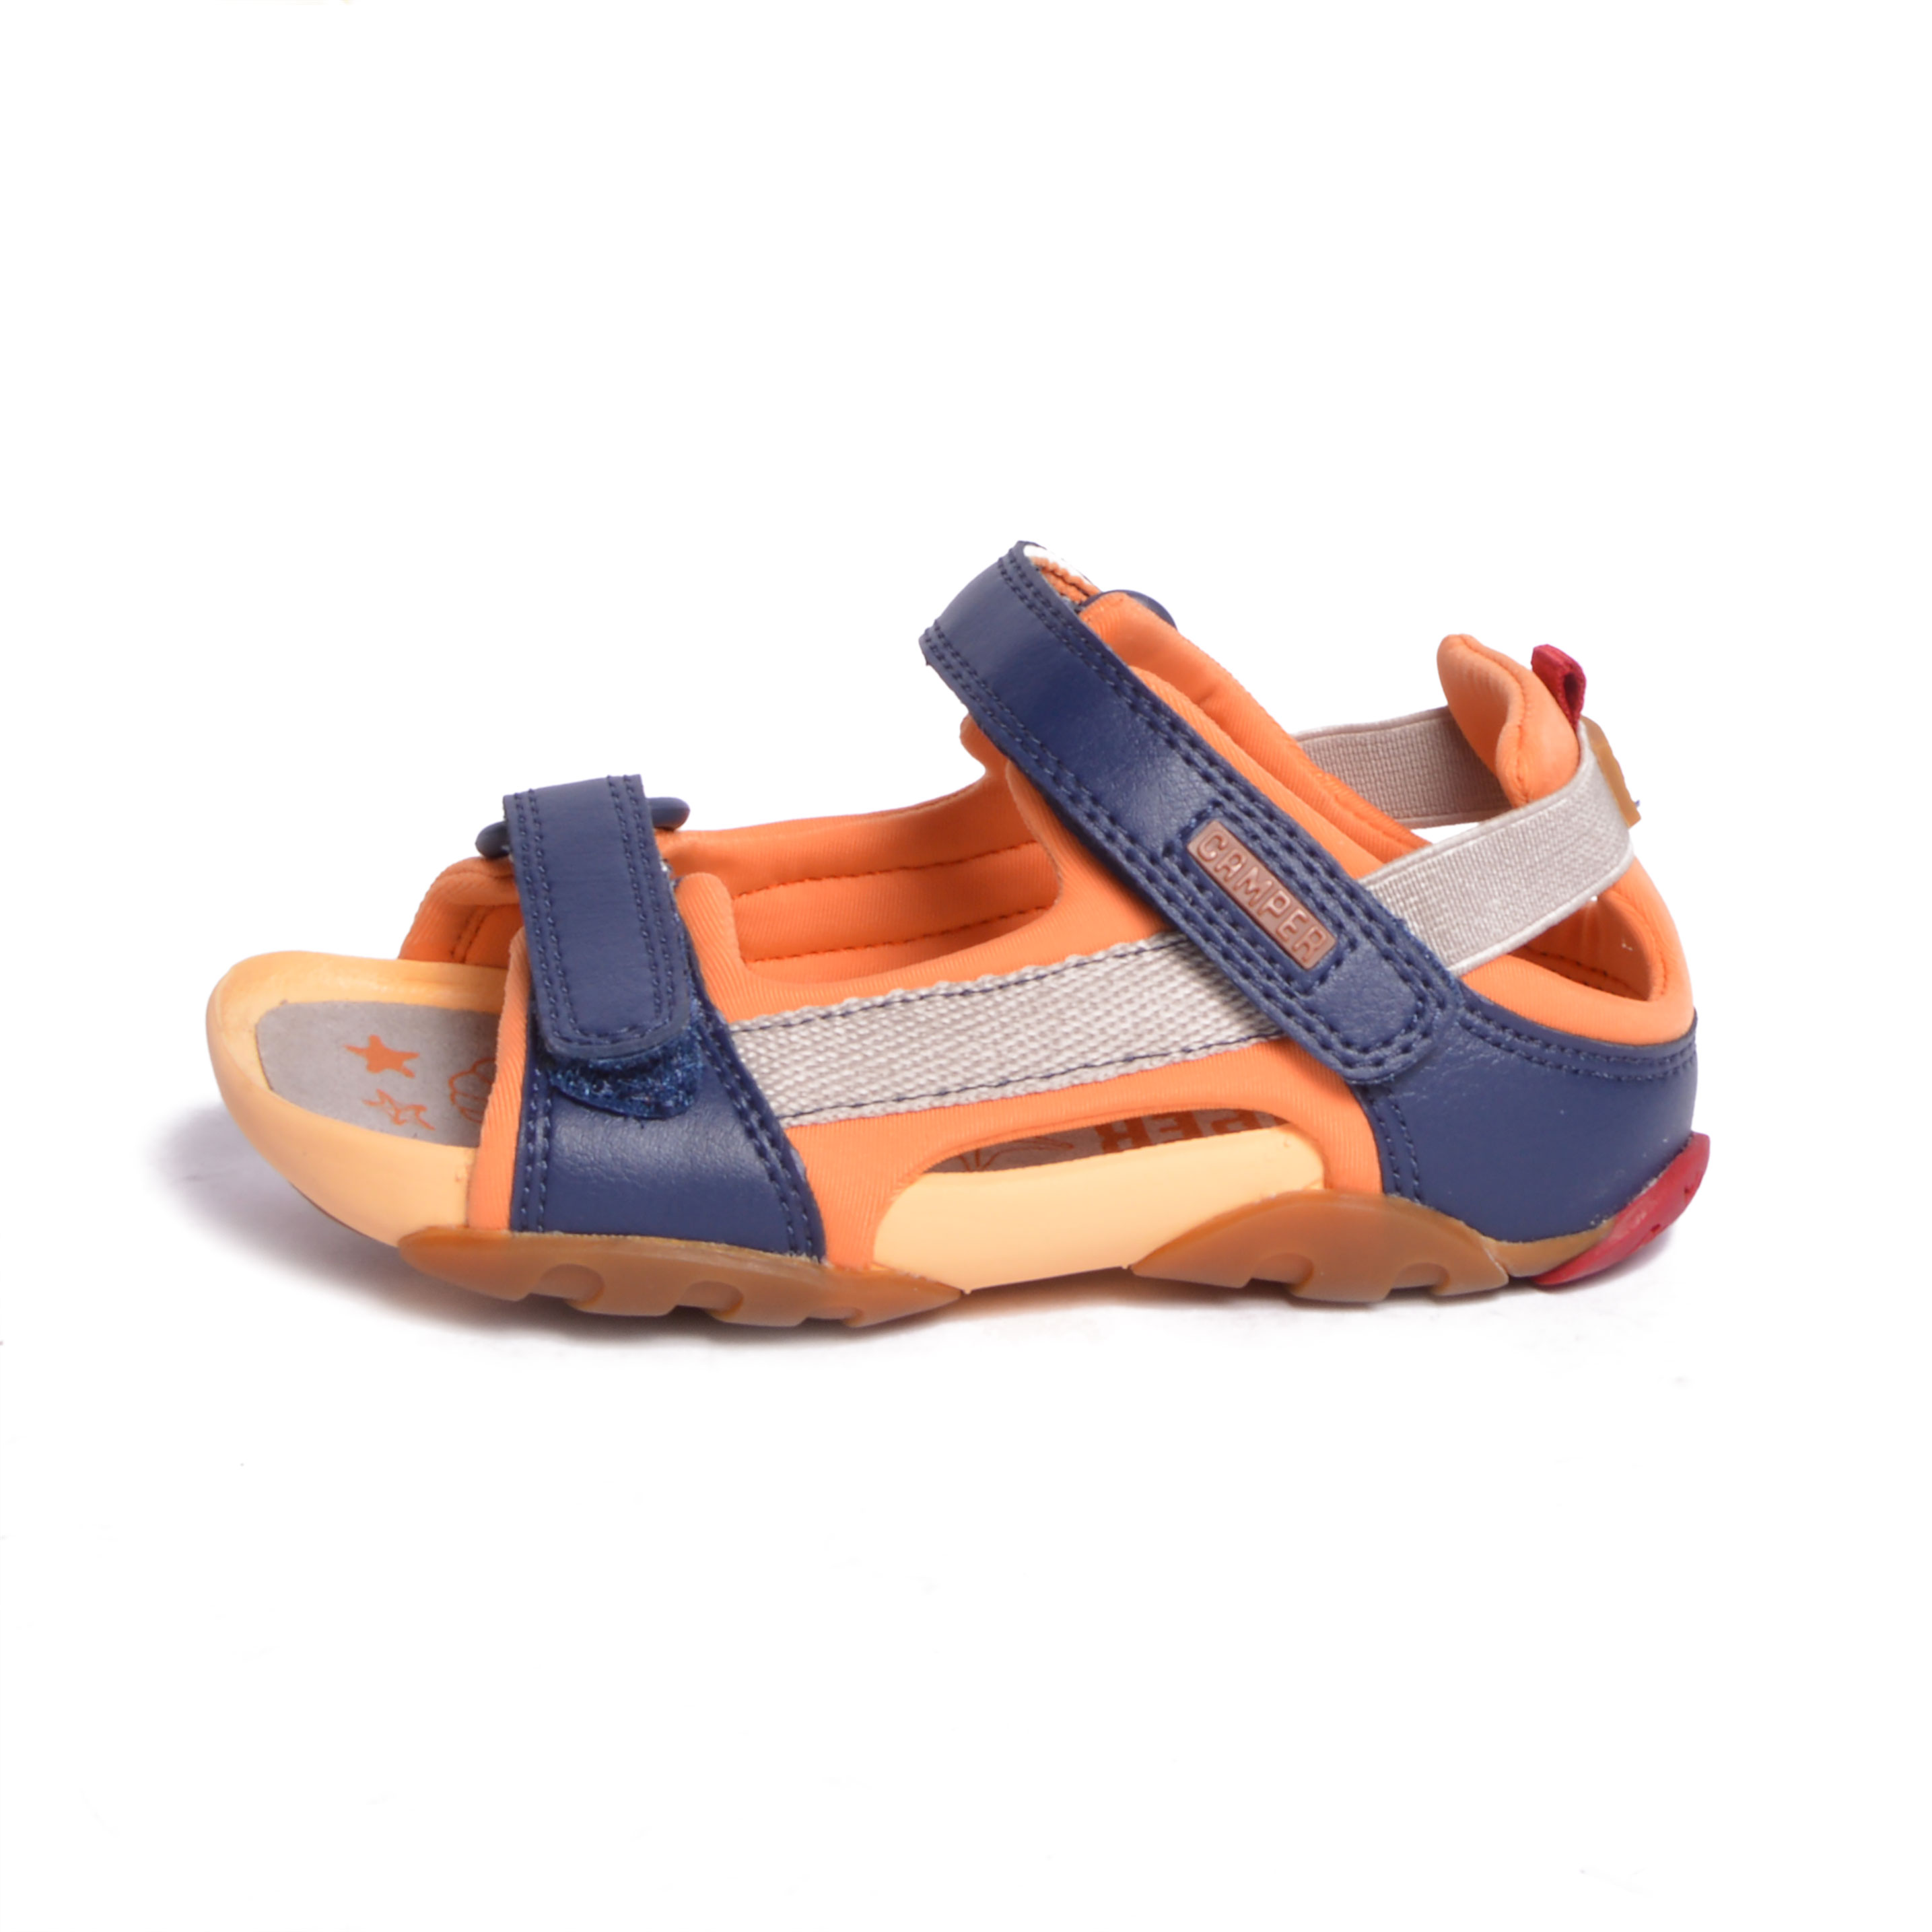 Watersafe,lightweight,comfy. Camper Ous Infant Boys Sandals In Navy